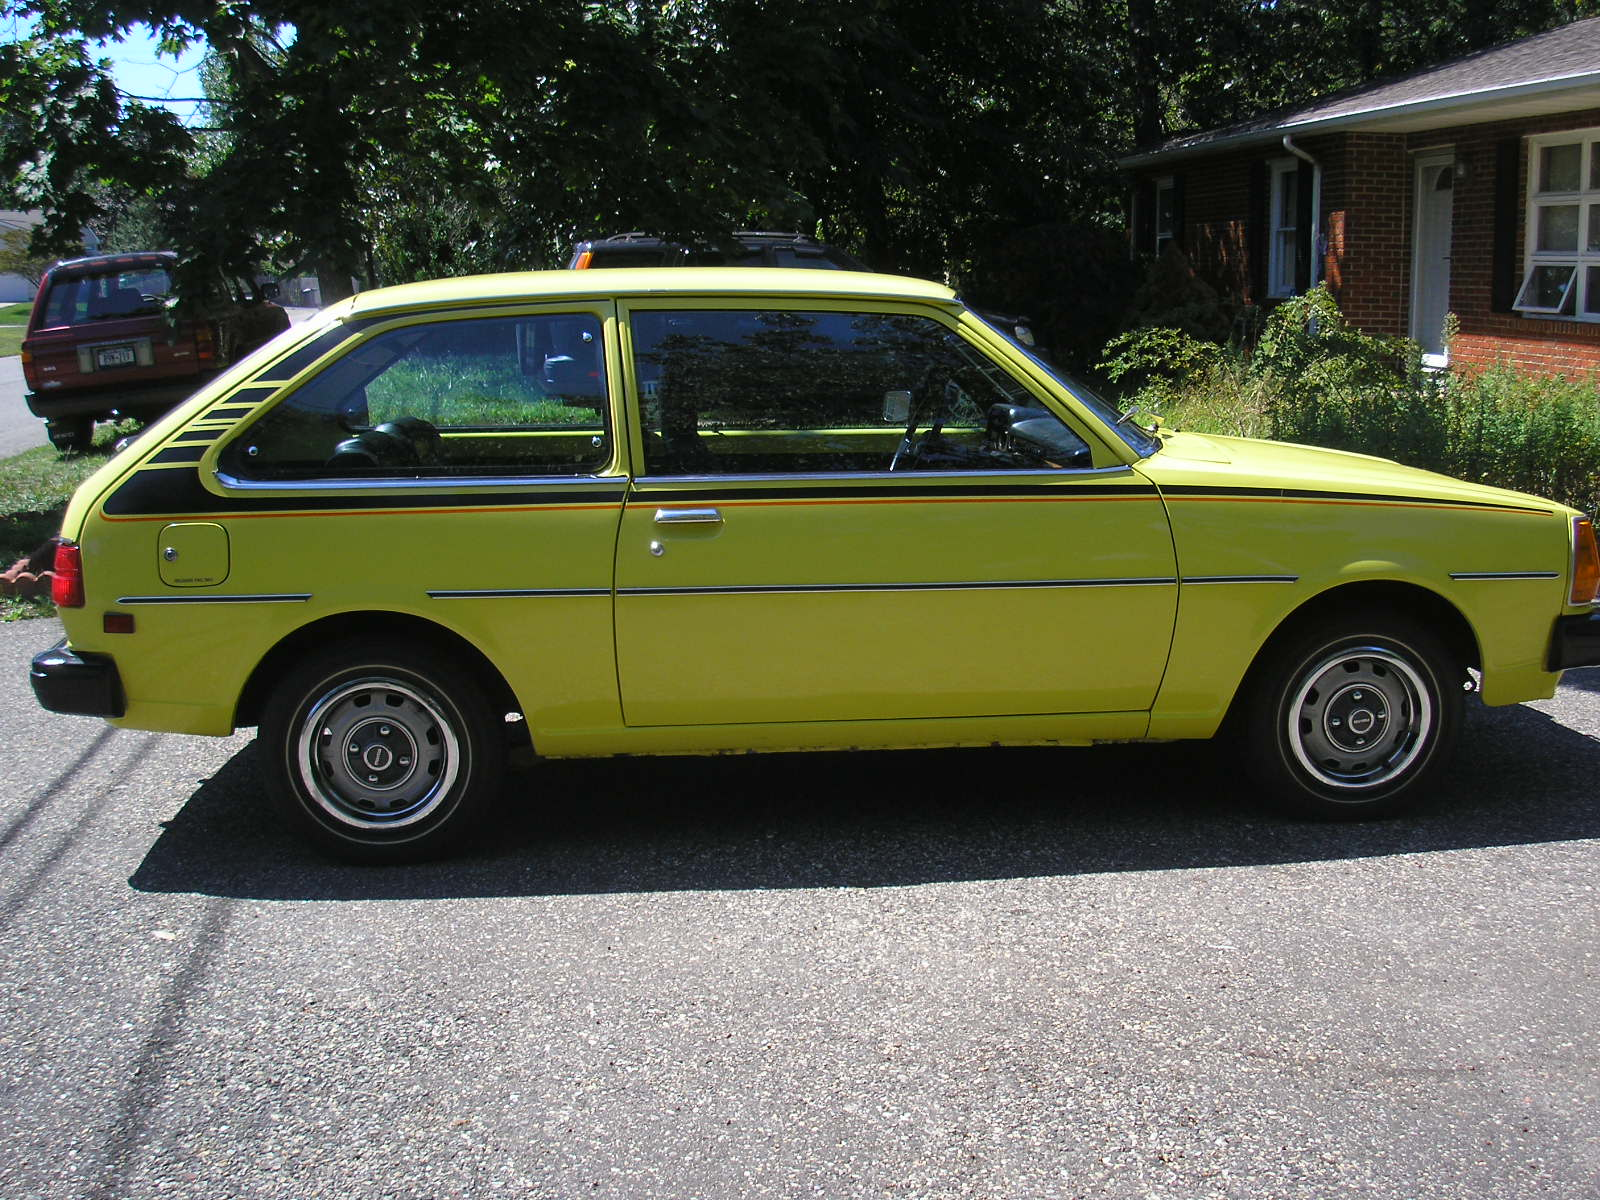 1978 Mazda GLC Hatchback.